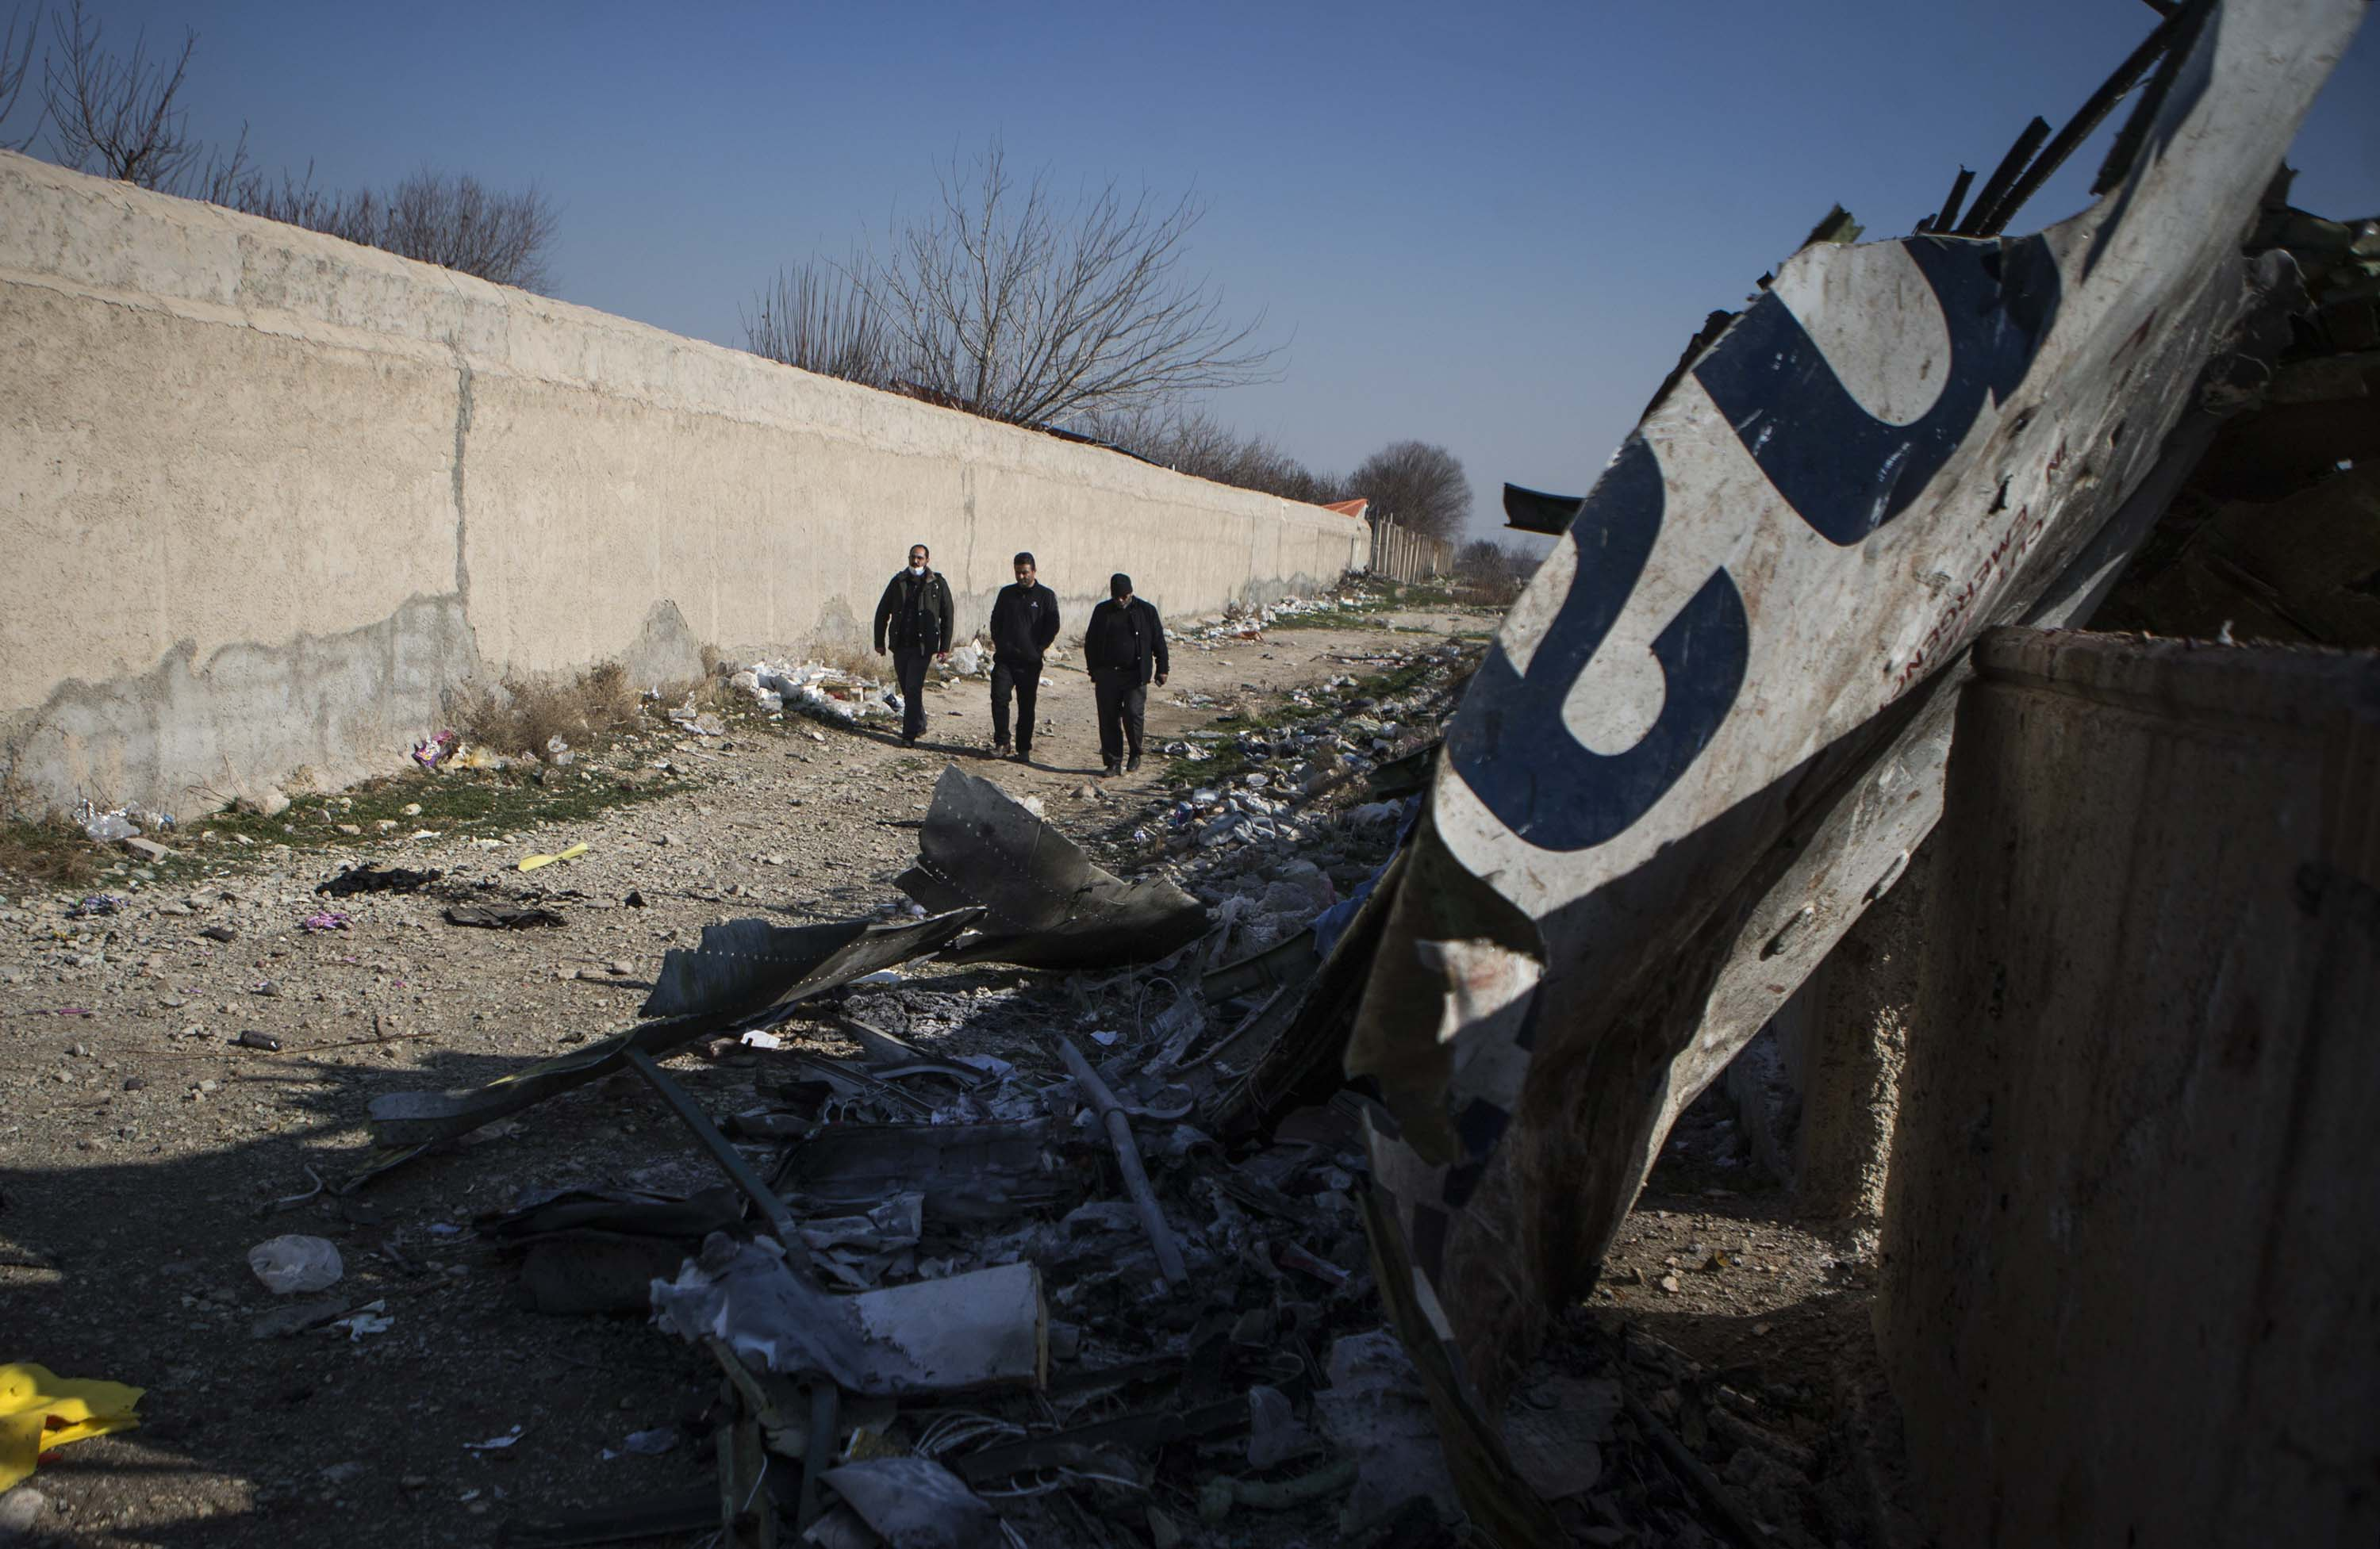 Parts of the Ukrainian International Airlines plane are seen strewn at the site of the crash in Iran on Wednesday.